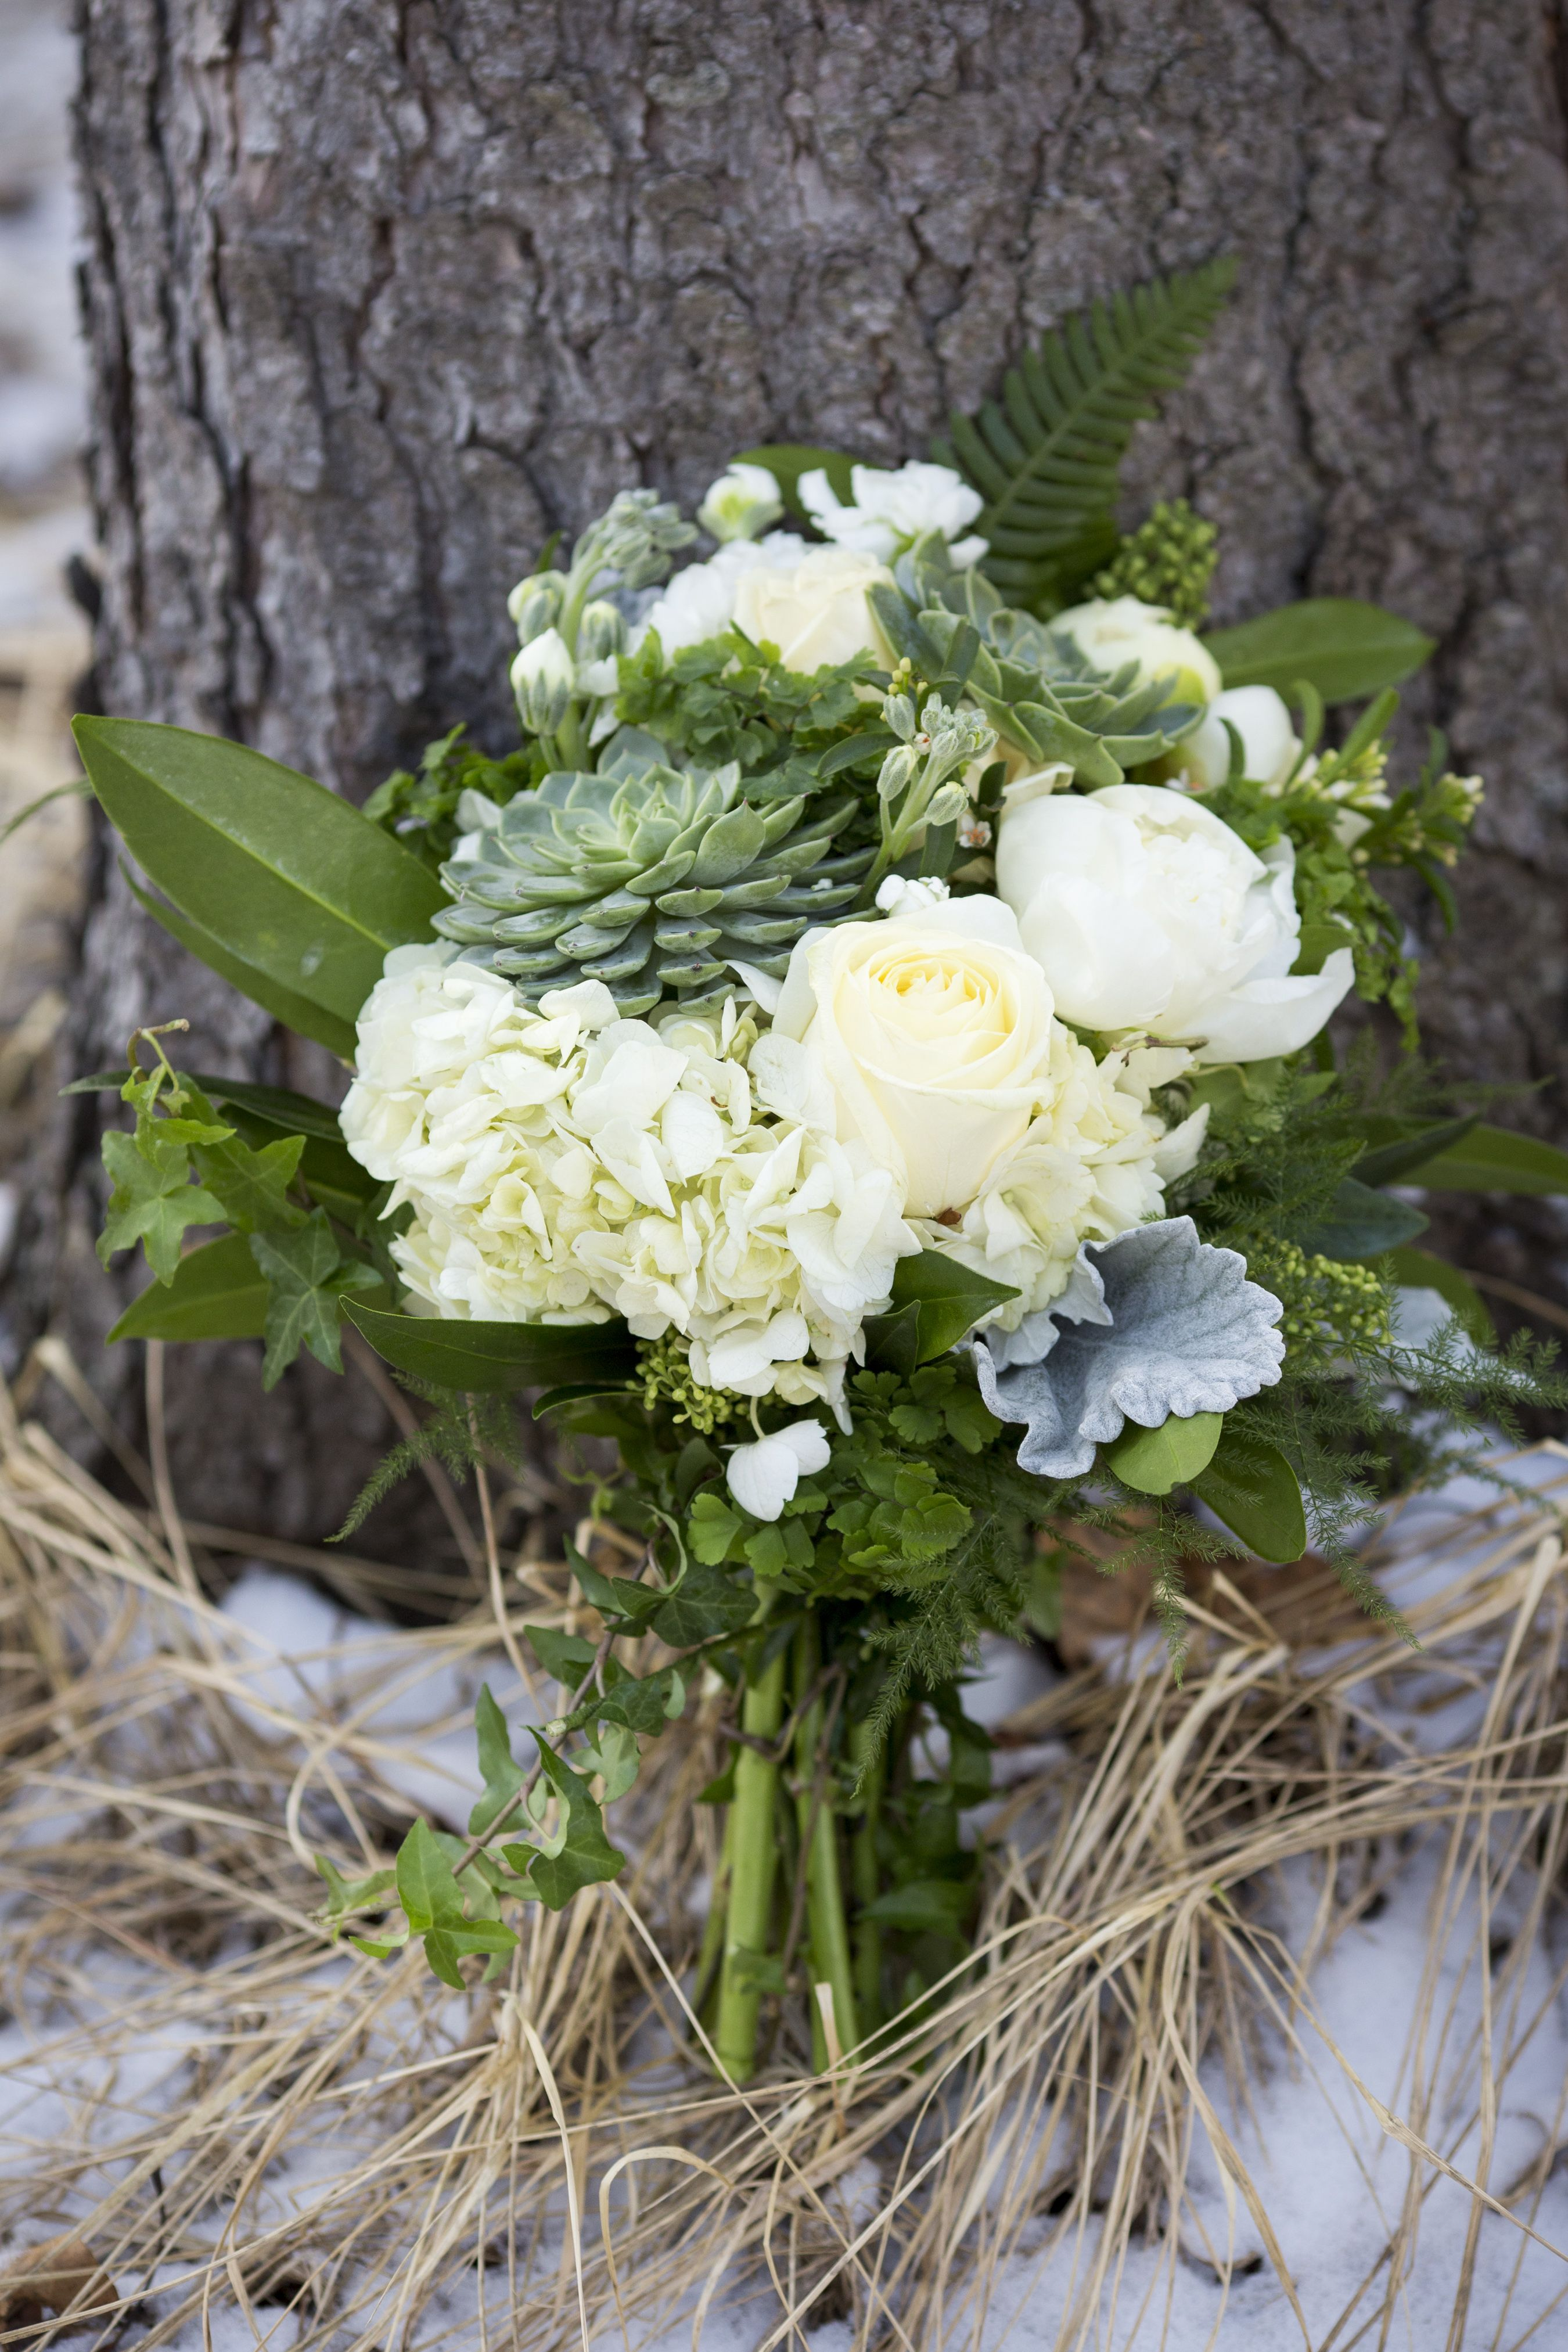 Bridal bouquet with succulents, roses, peonies,hydrangea, stocks, ferns, ivy and dusty miller. Designed by Forget-Me-Not Flowers Banff. Photo by Kim Payant Photography. http://www.kimpayantphotography.com/